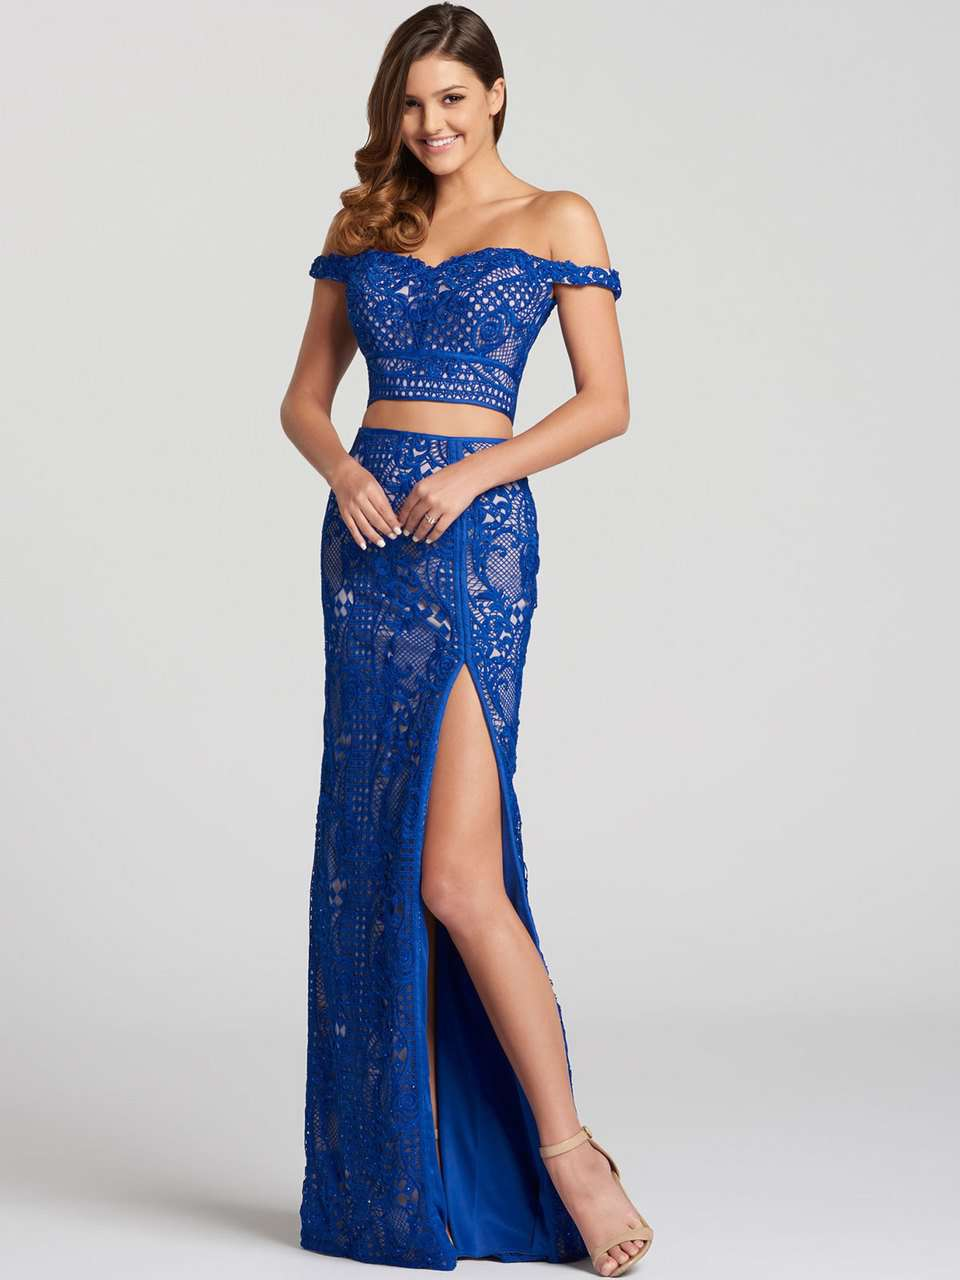 Ellie Wilde EW118059 Royal Blue